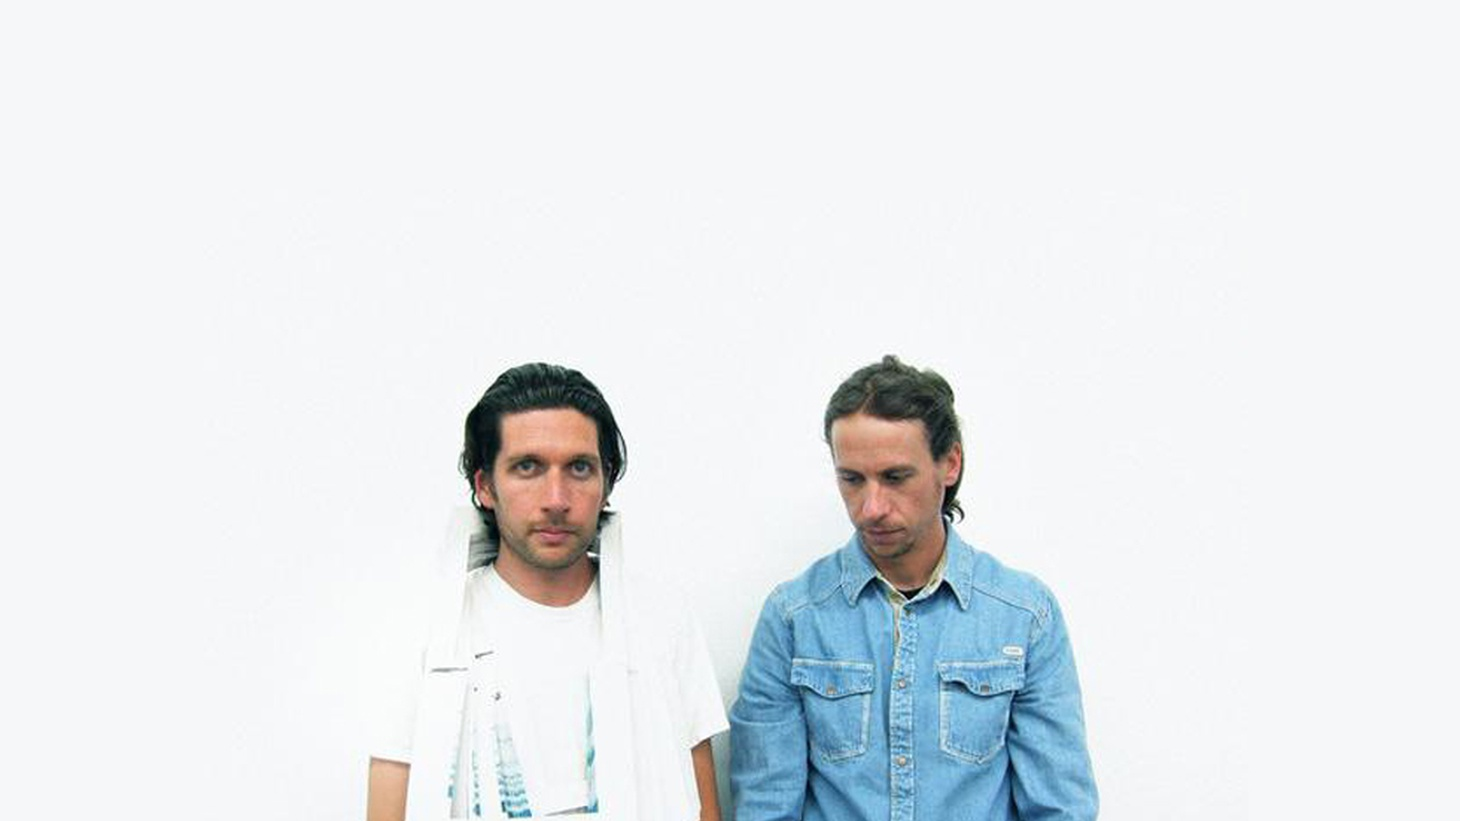 LA punk duo No Age visited our studio around the release date for their album, An Object, on Sub Pop Records.